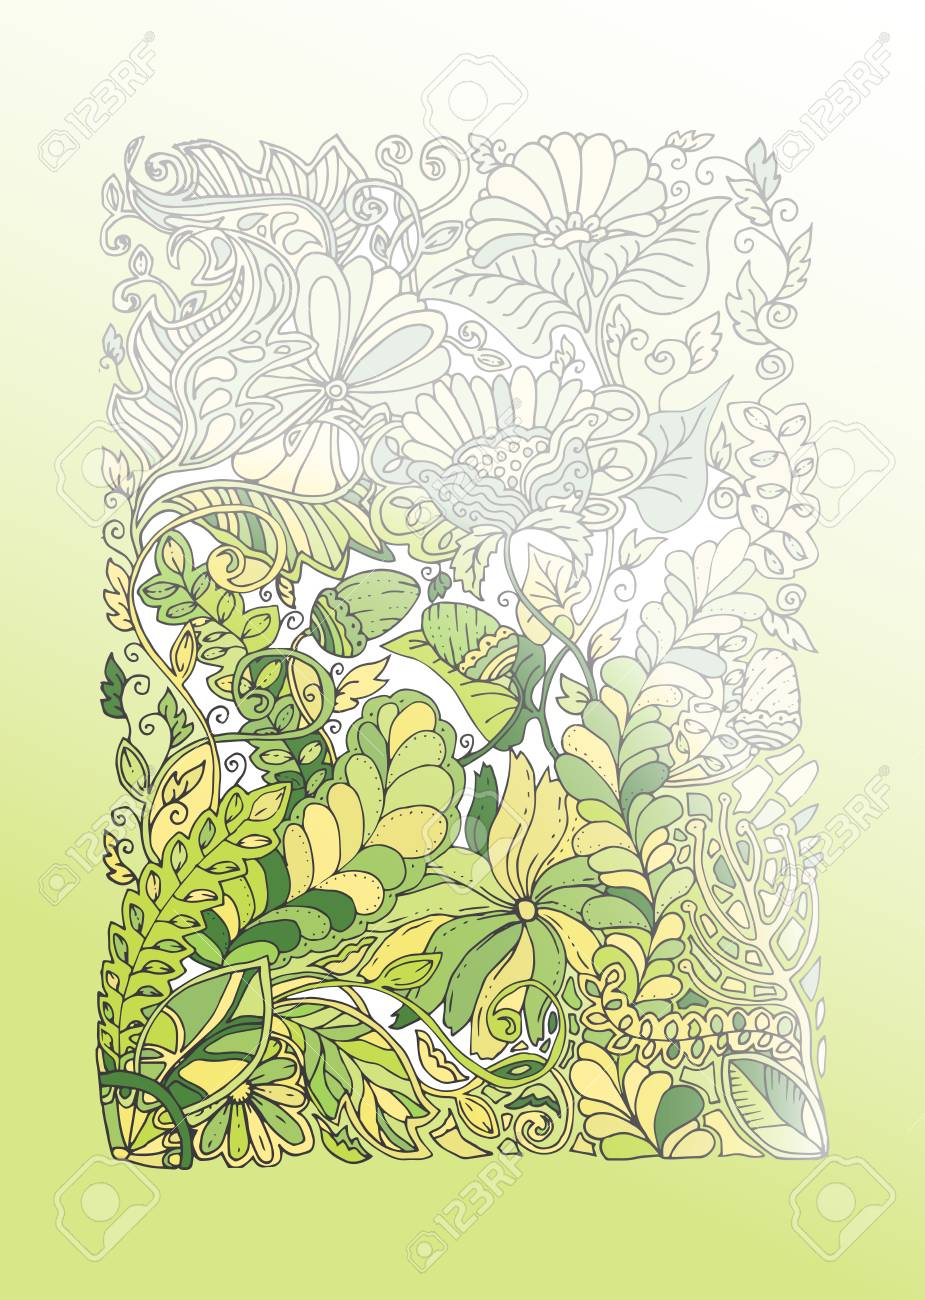 Green Spring Doodle Illustration, Art Therapy Adult Coloring ...